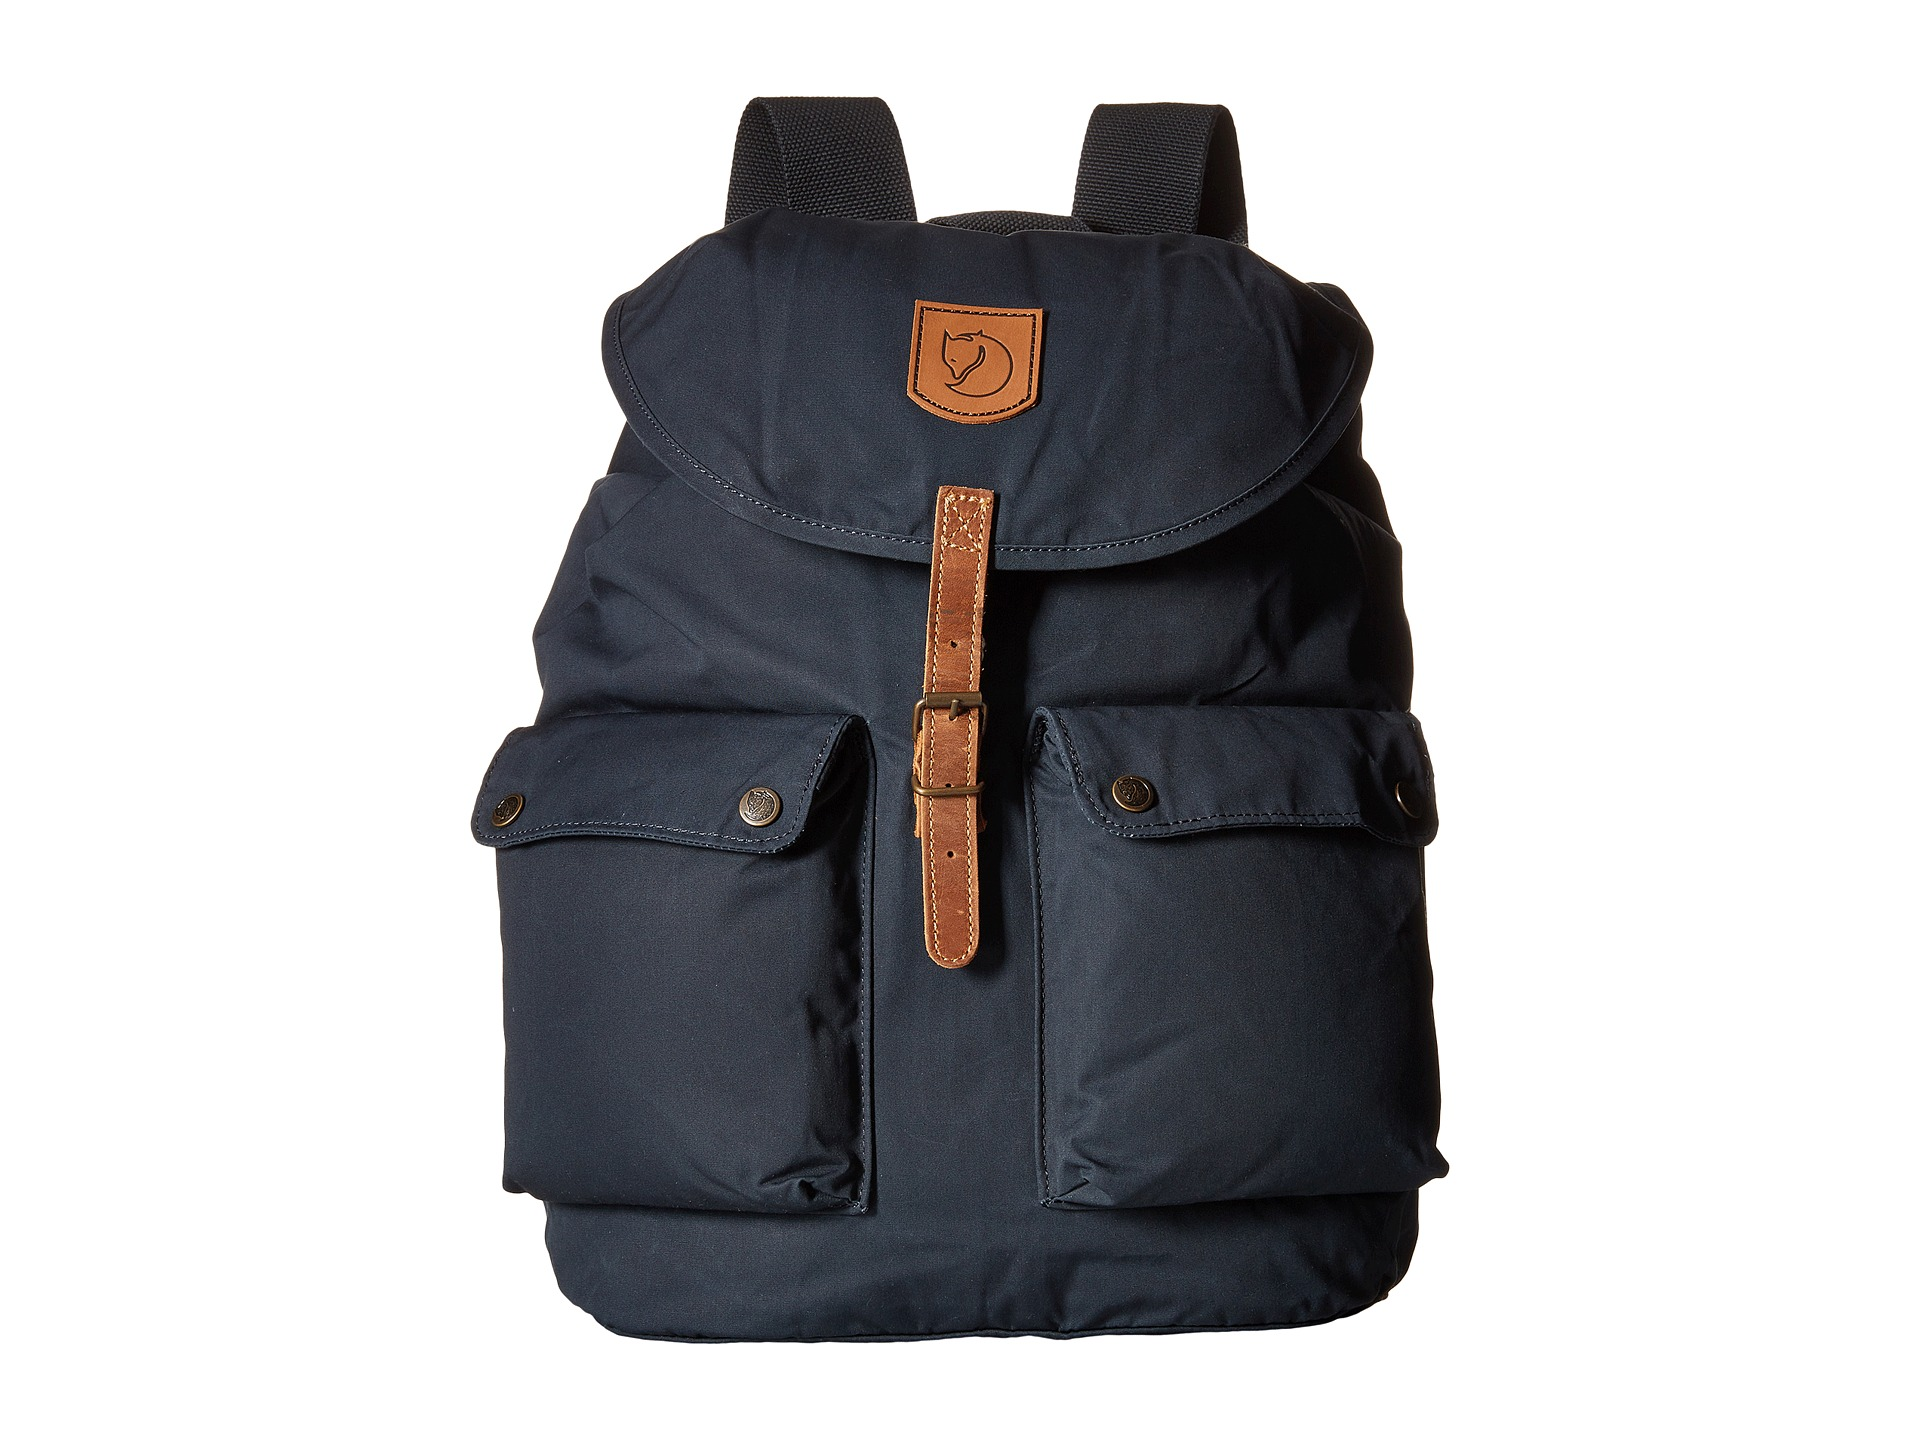 fjallraven greenland backpack black